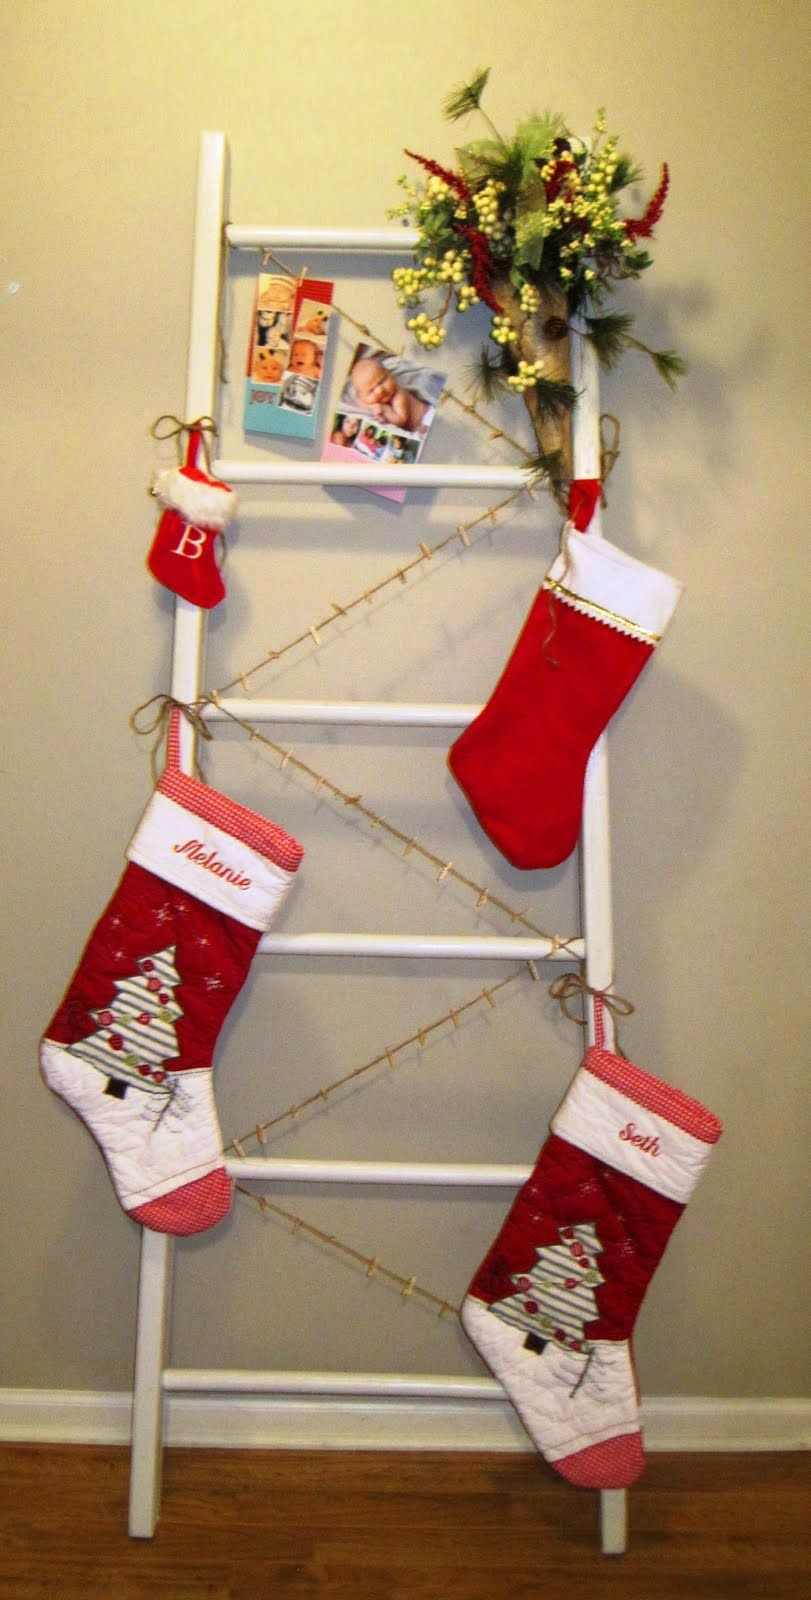 Diy Christmas Ladder Stocking And Card Holder Diy